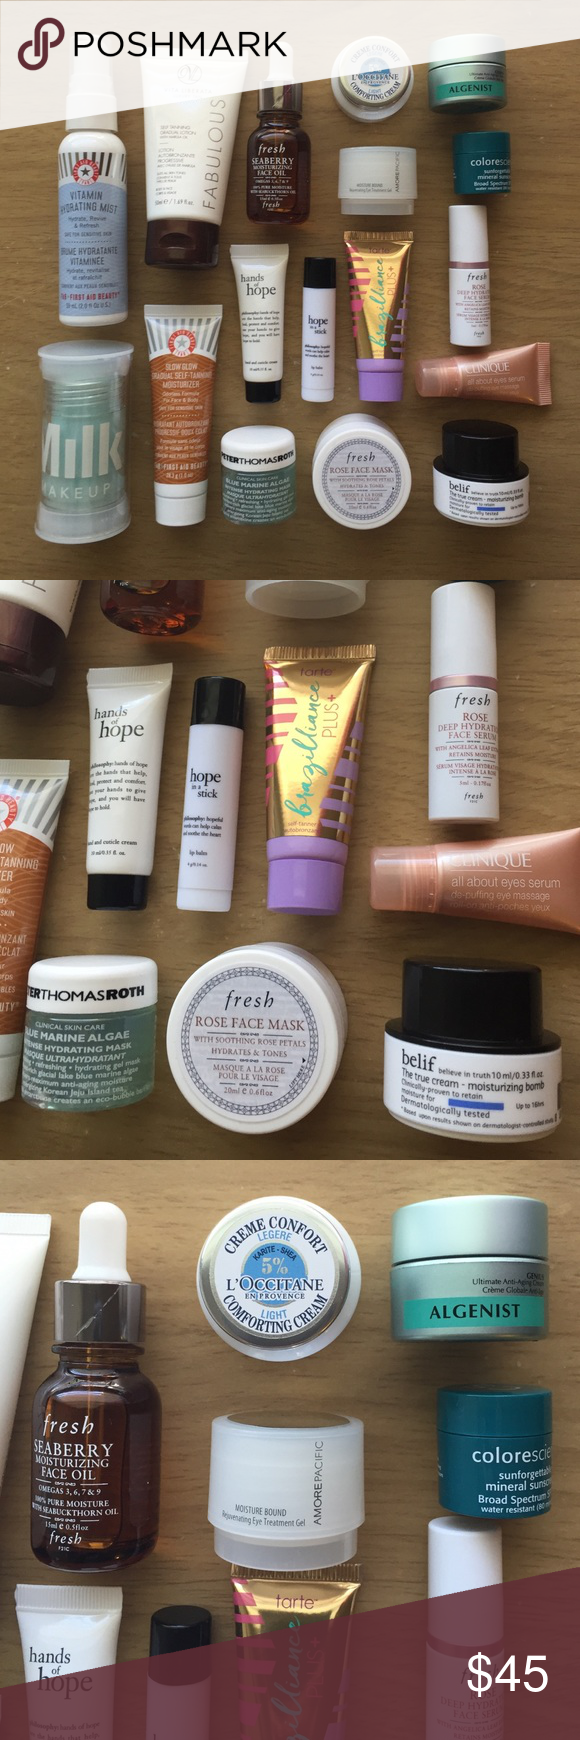 17 designer skincare items All items are new and unused